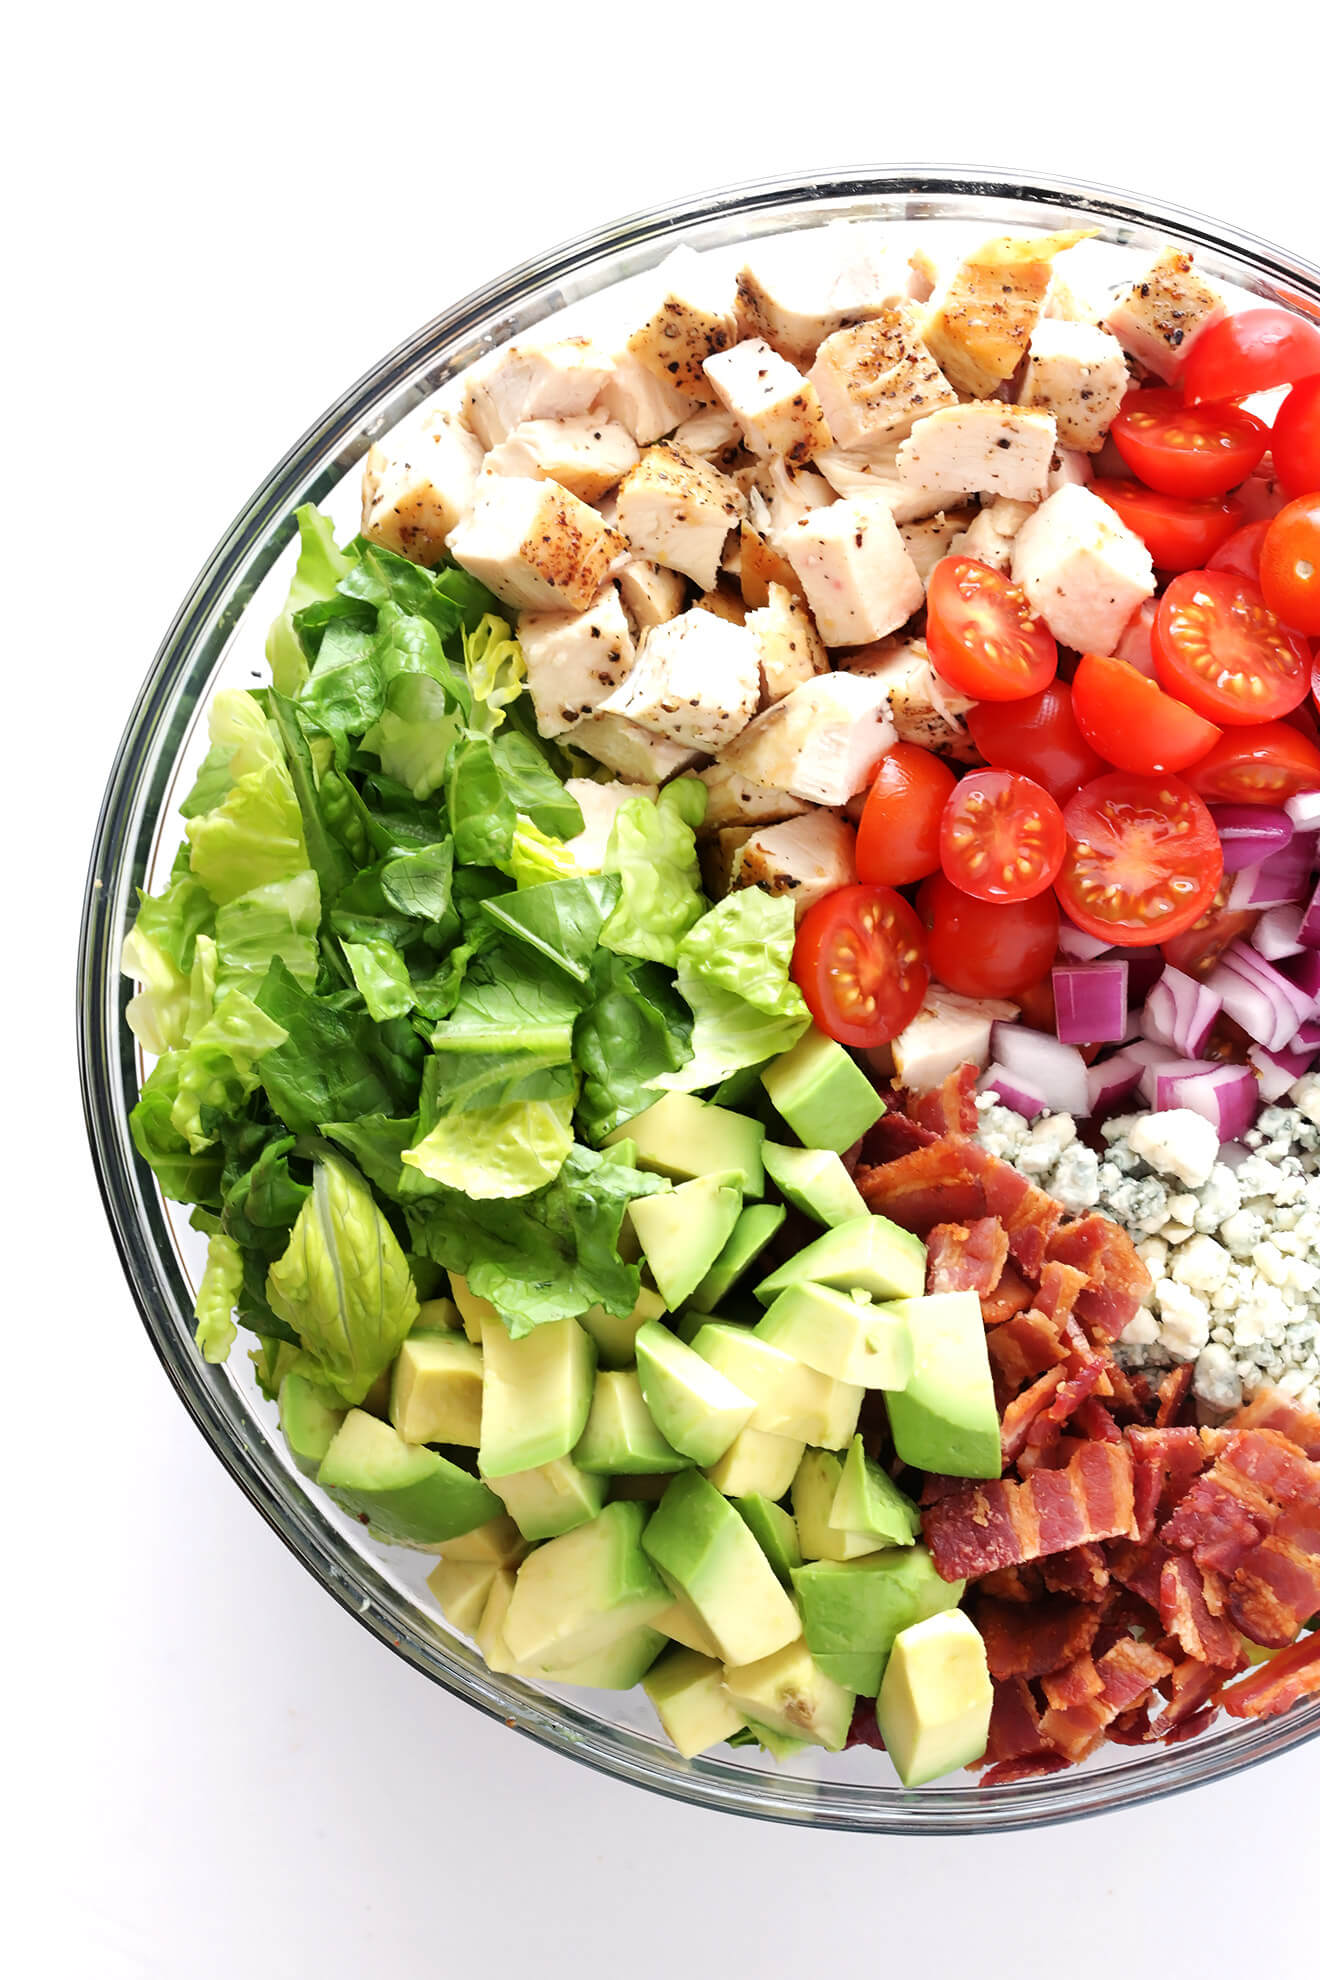 This Chicken, Bacon and Avocado Chopped Salad is made with the most delicious savory ingredients, including lots of blue cheese and a yummy red wine vinaigrette. | gimmesomeoven.com